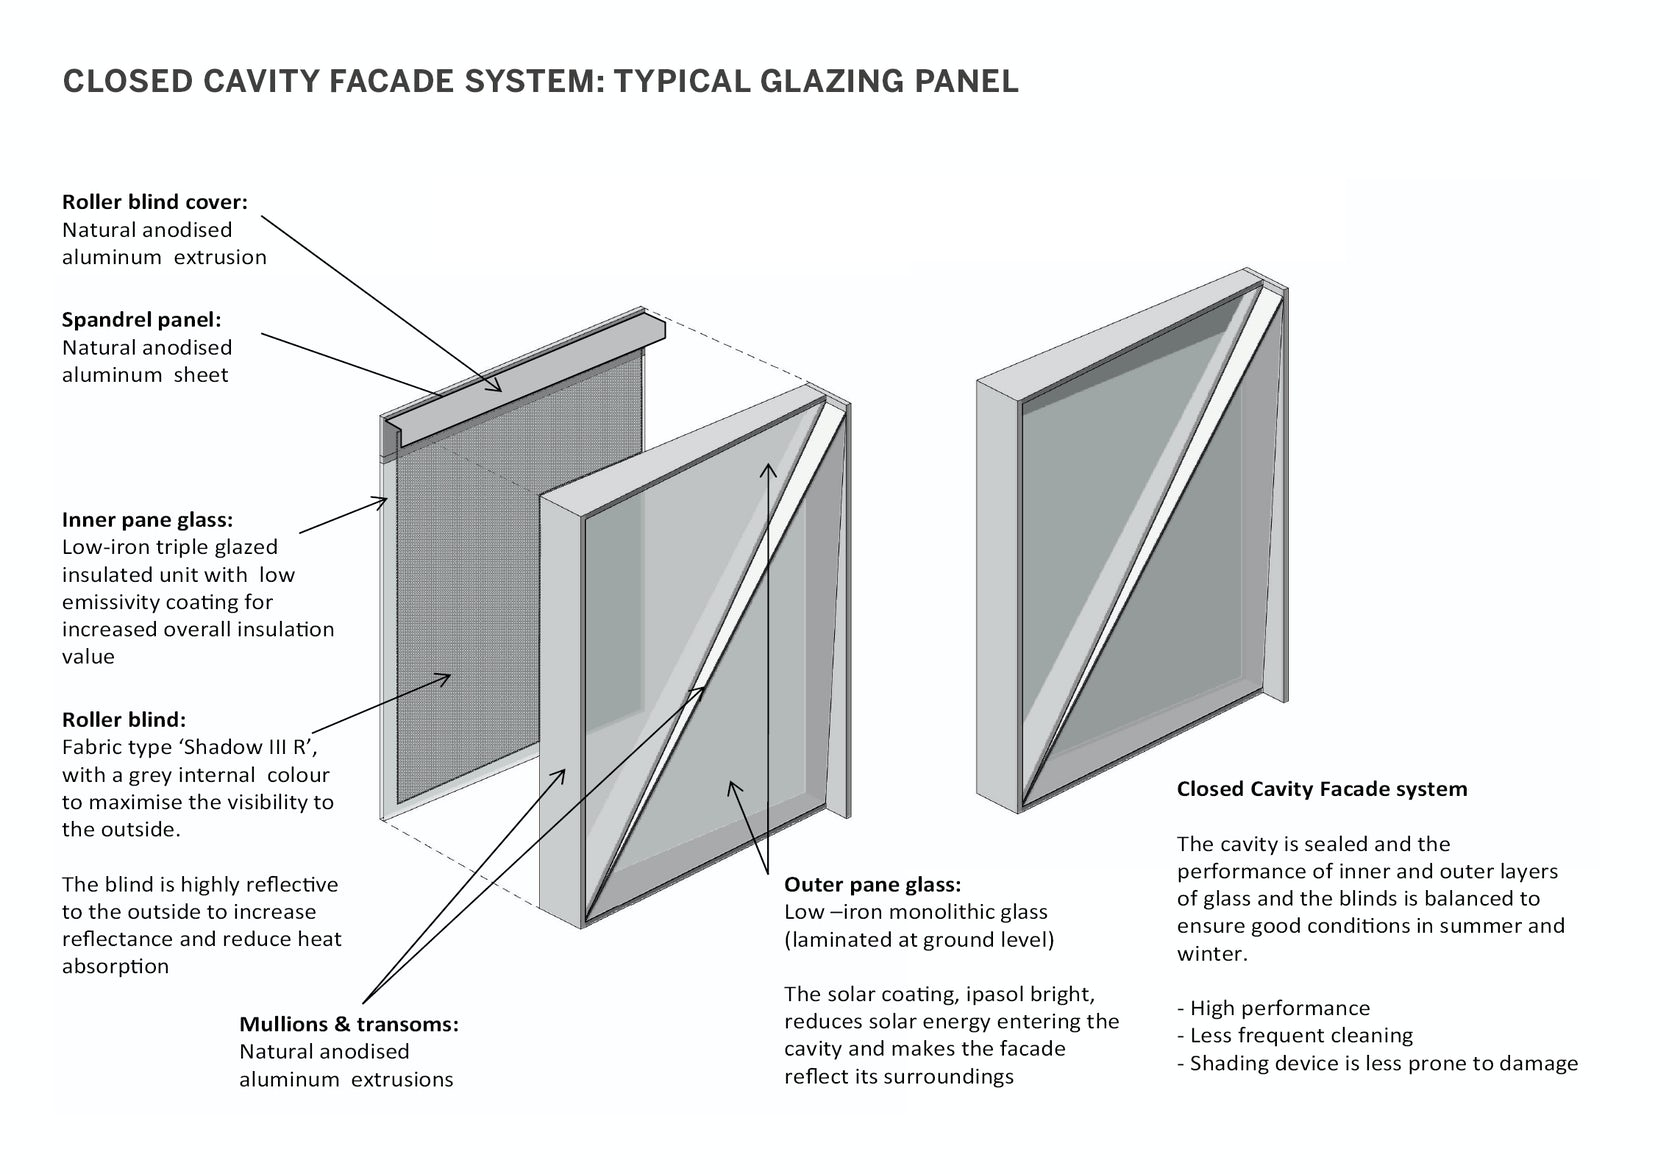 Character Design Classes In Nyc : Closed cavity facade architizer